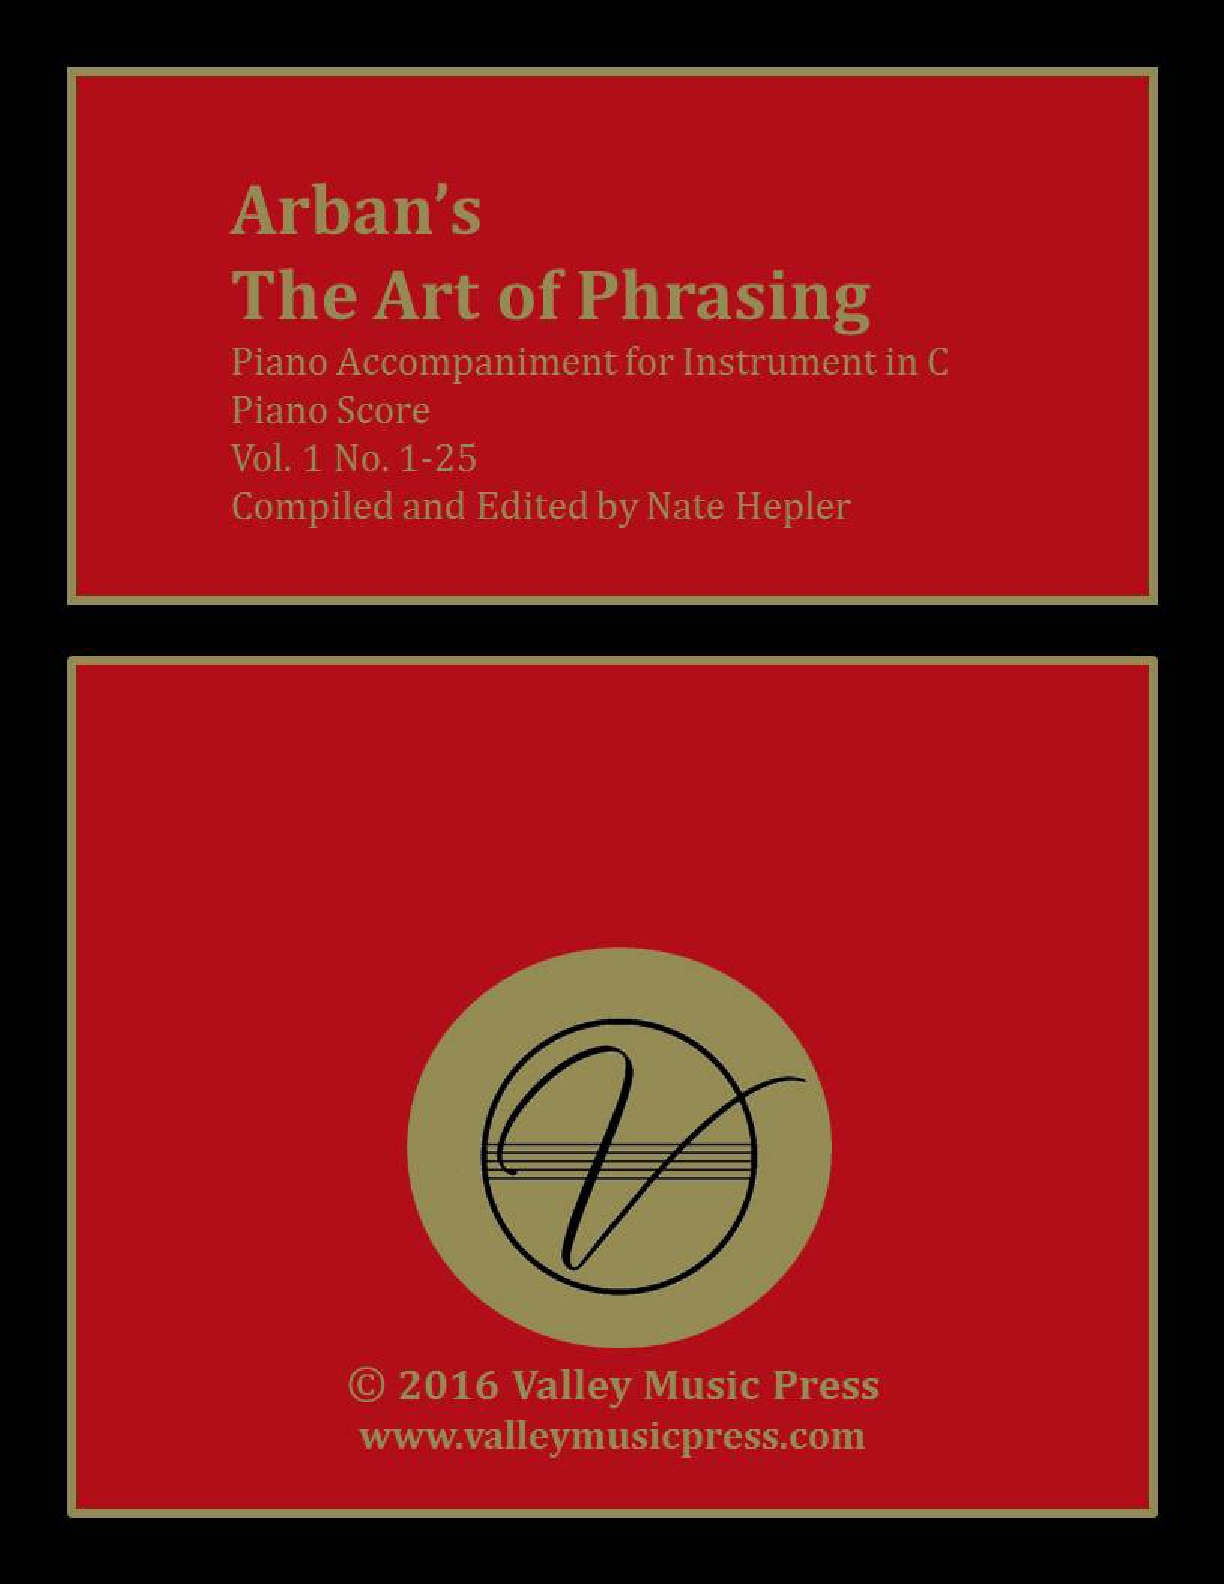 Arban Art of Phrasing Piano Accompaniment Vol. 1 No. 1-25 (C)